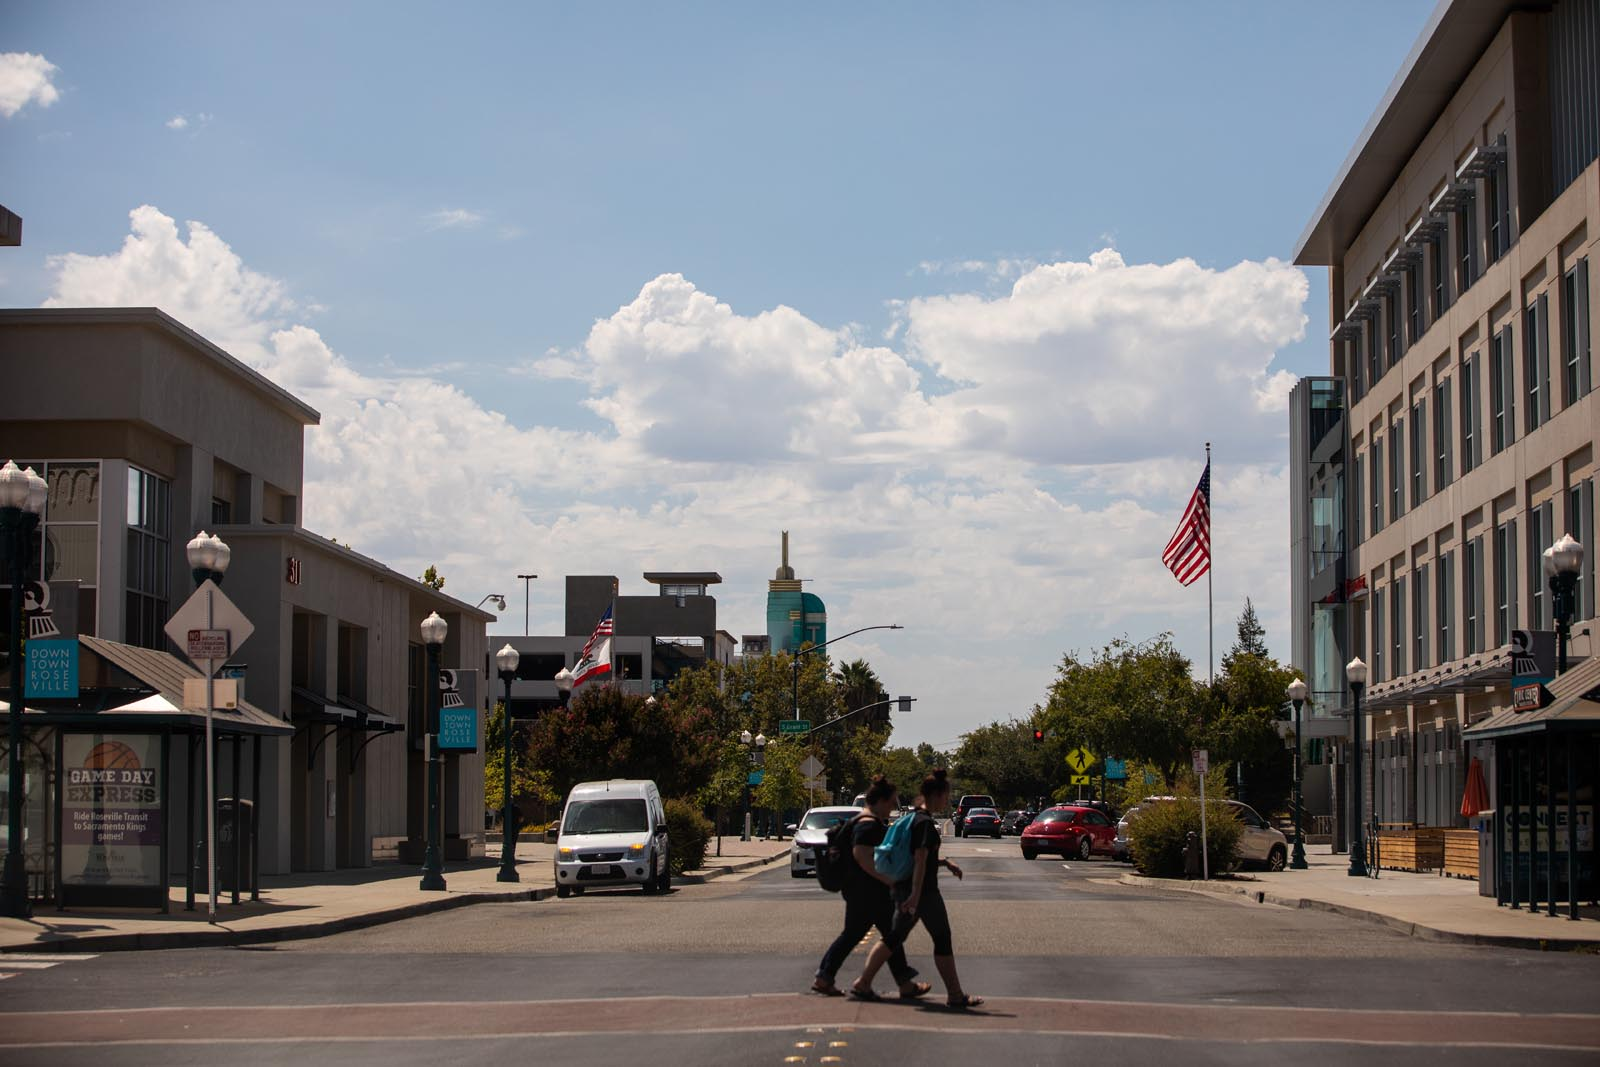 View of Downtown Roseville